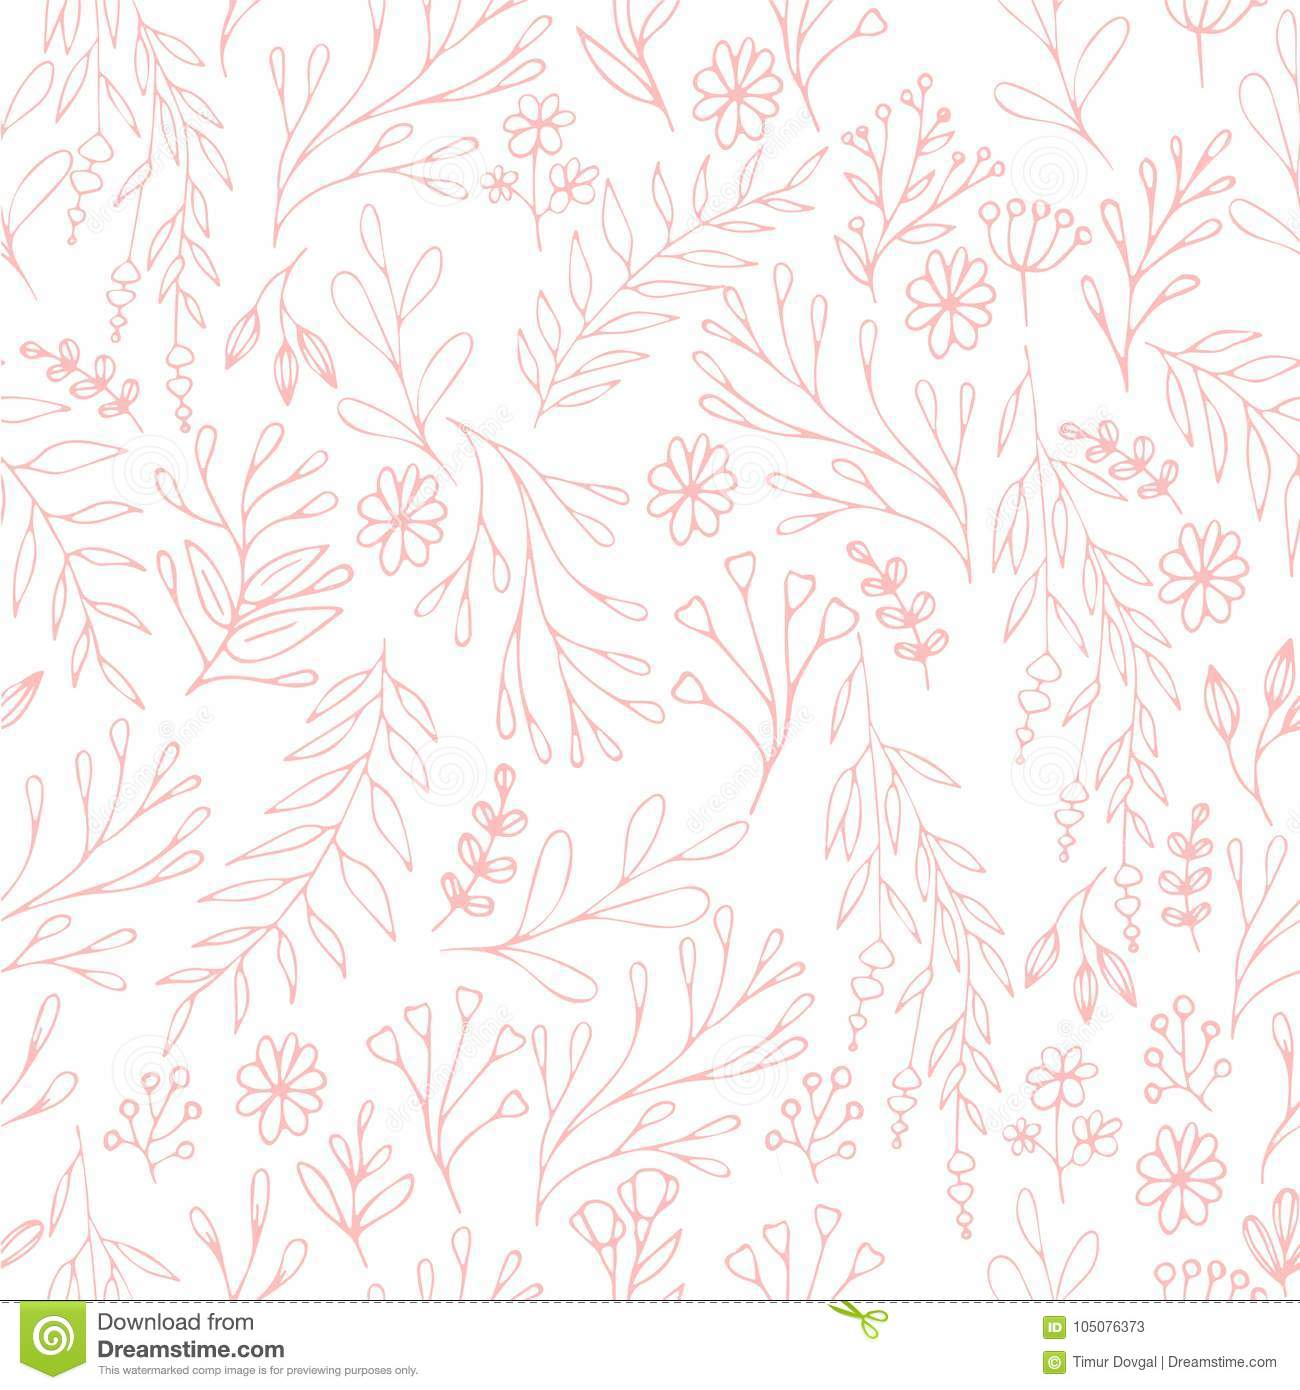 Vector Floral Pattern In Doodle Style With Flowers And